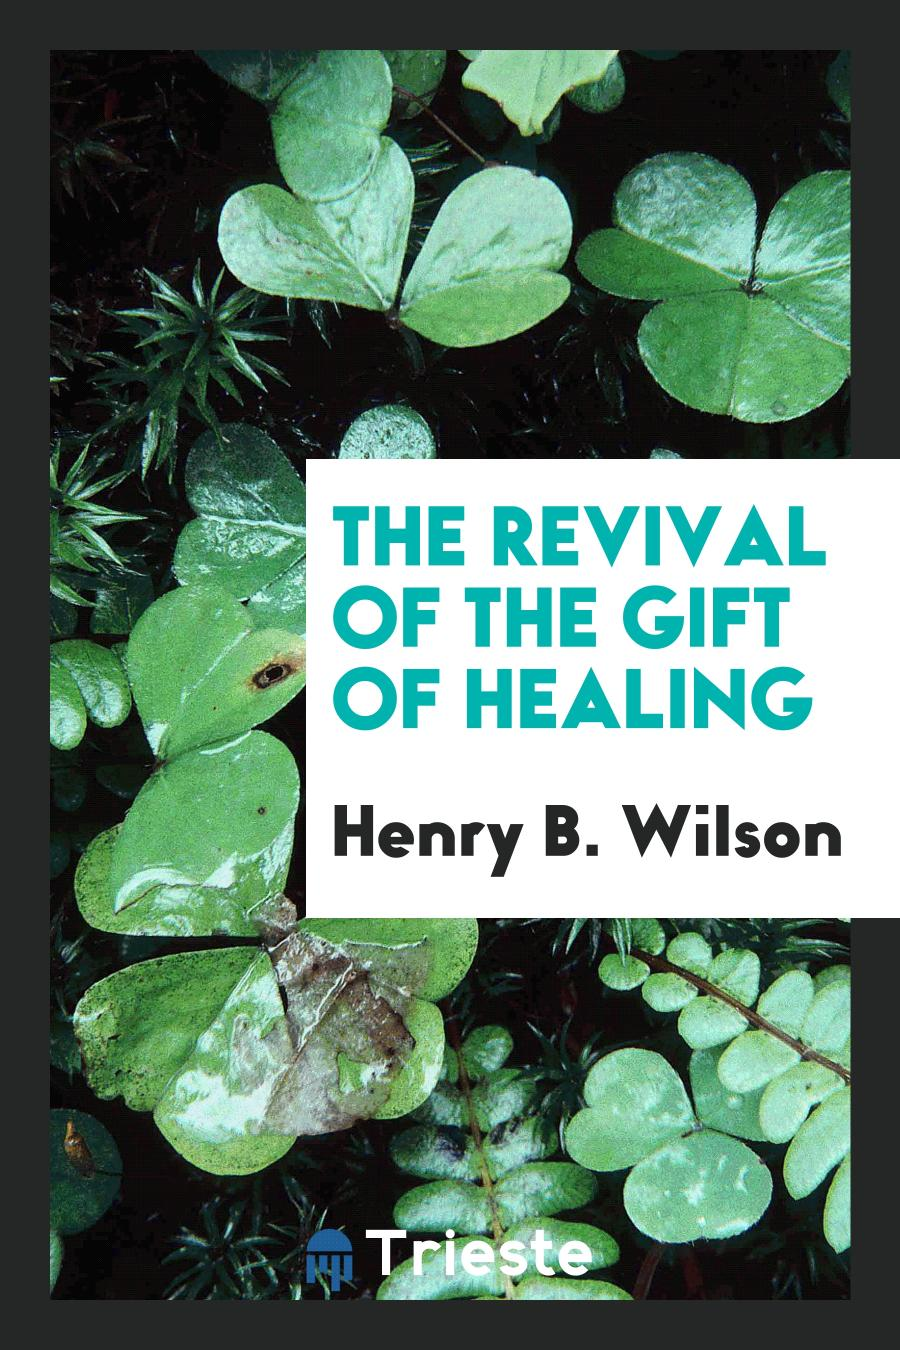 The Revival of the Gift of Healing